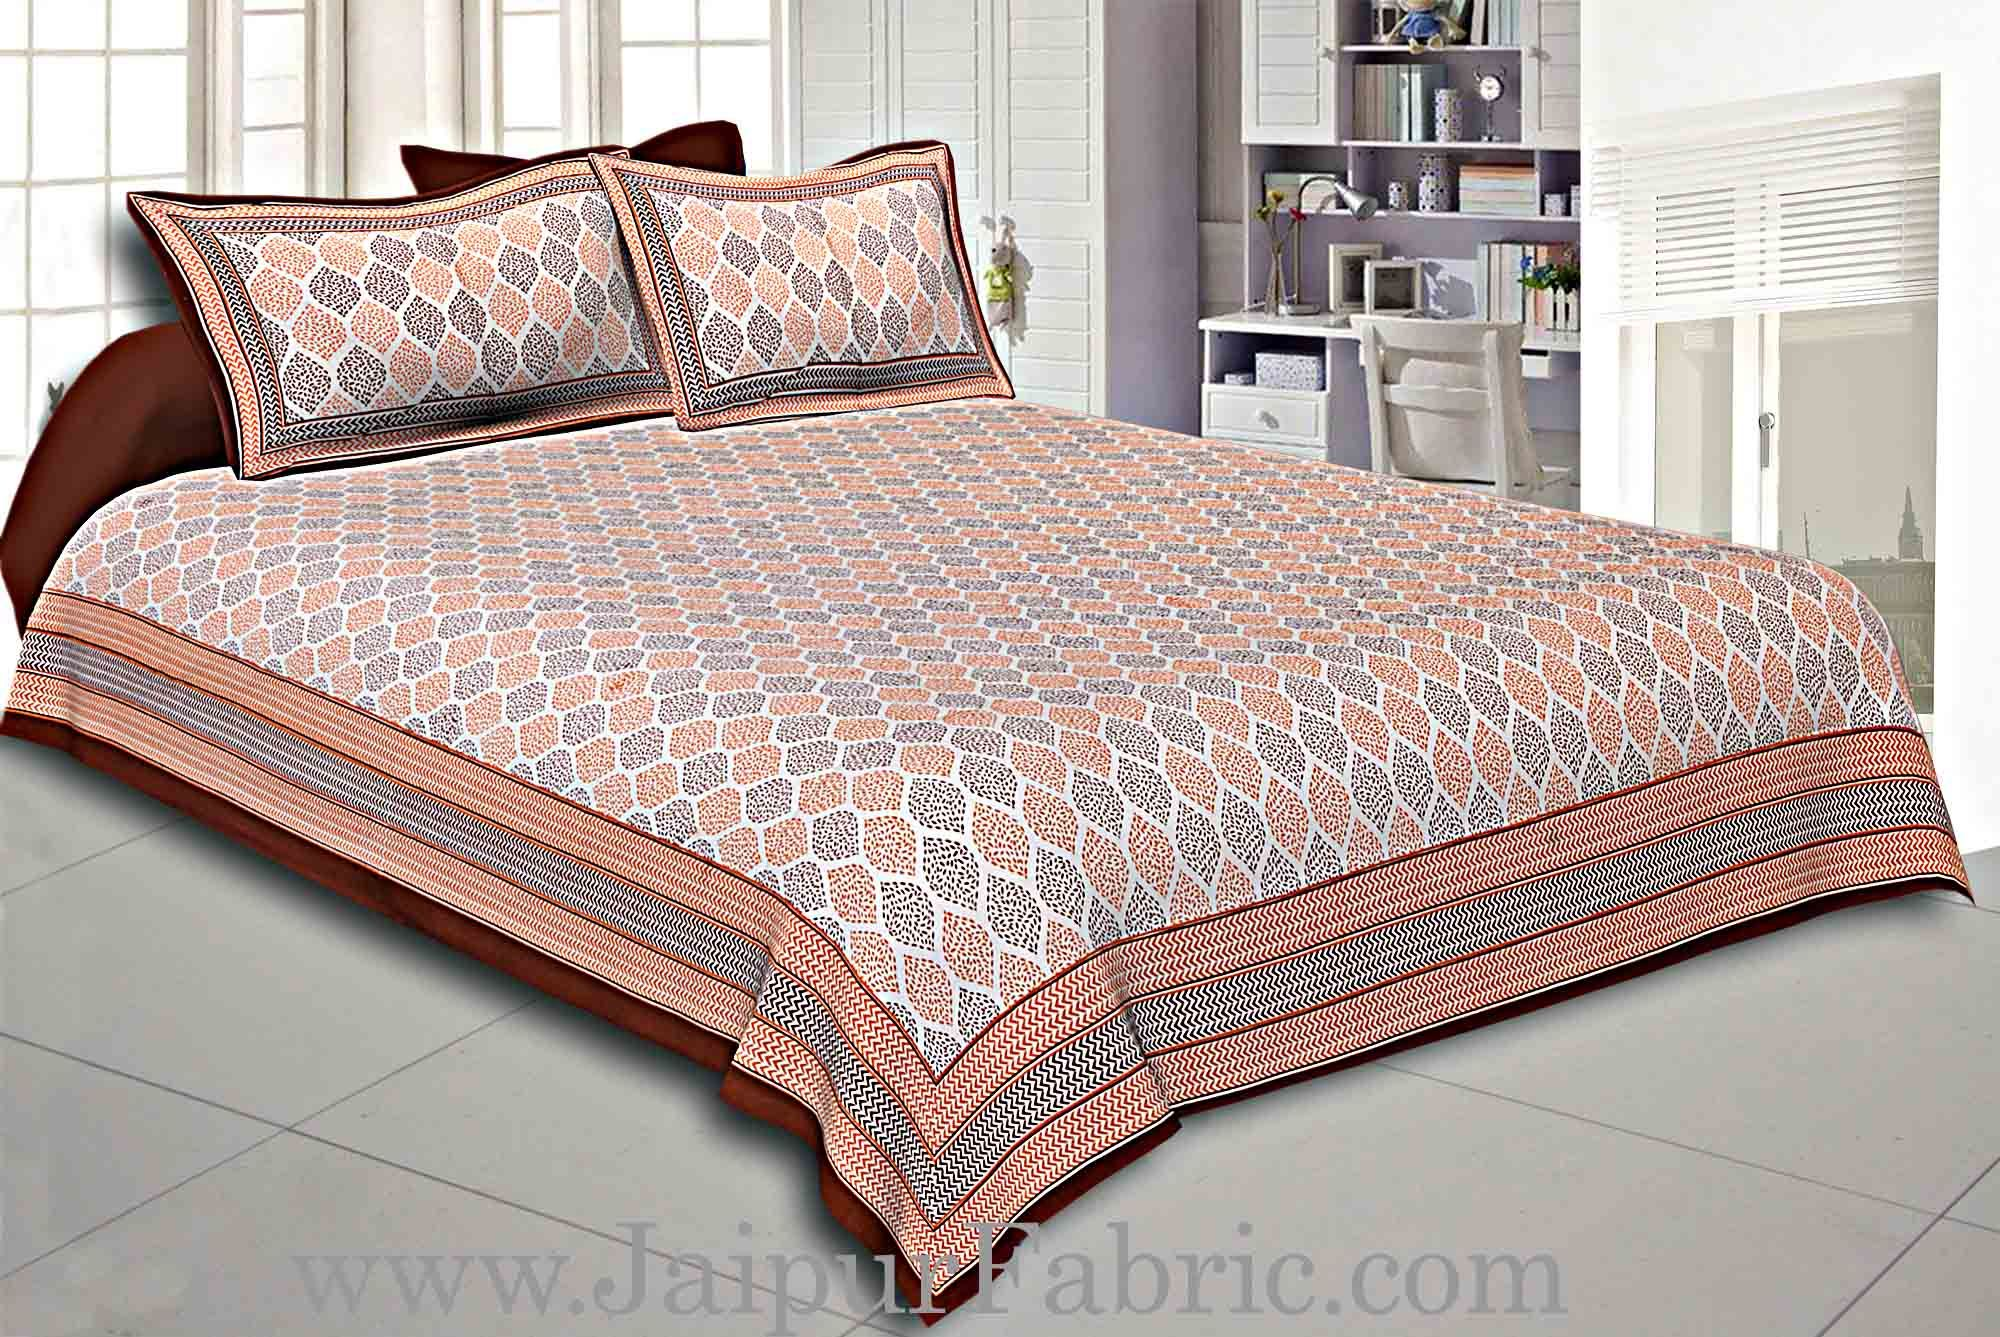 Brown Border Cream Base Leaf Pigment Cotton Satin Hand Block Double Bedsheet